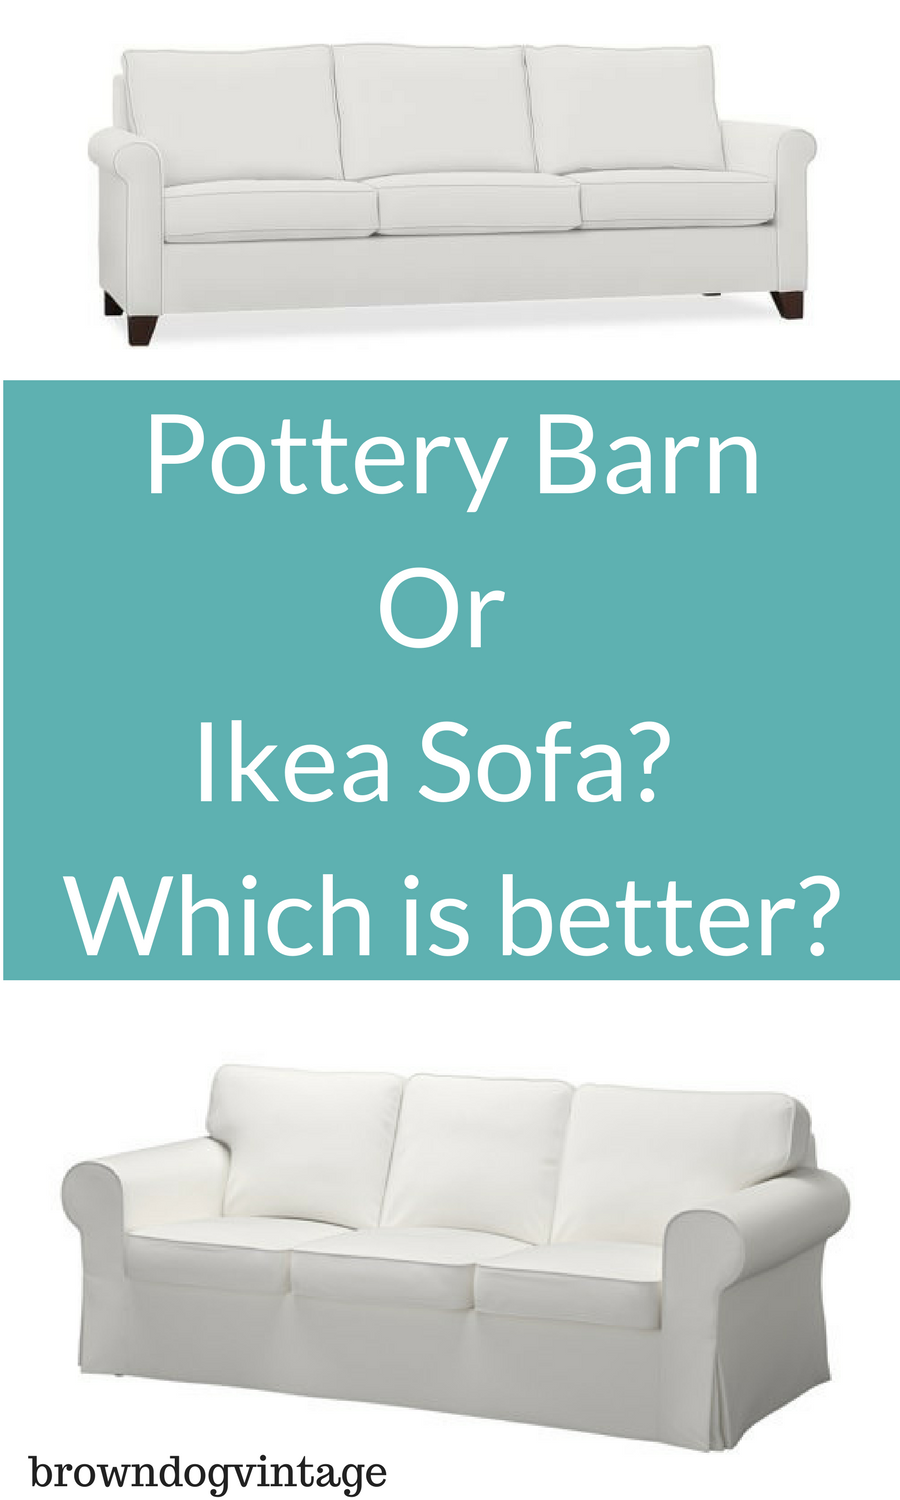 Pros and cons of furniture from IKEA